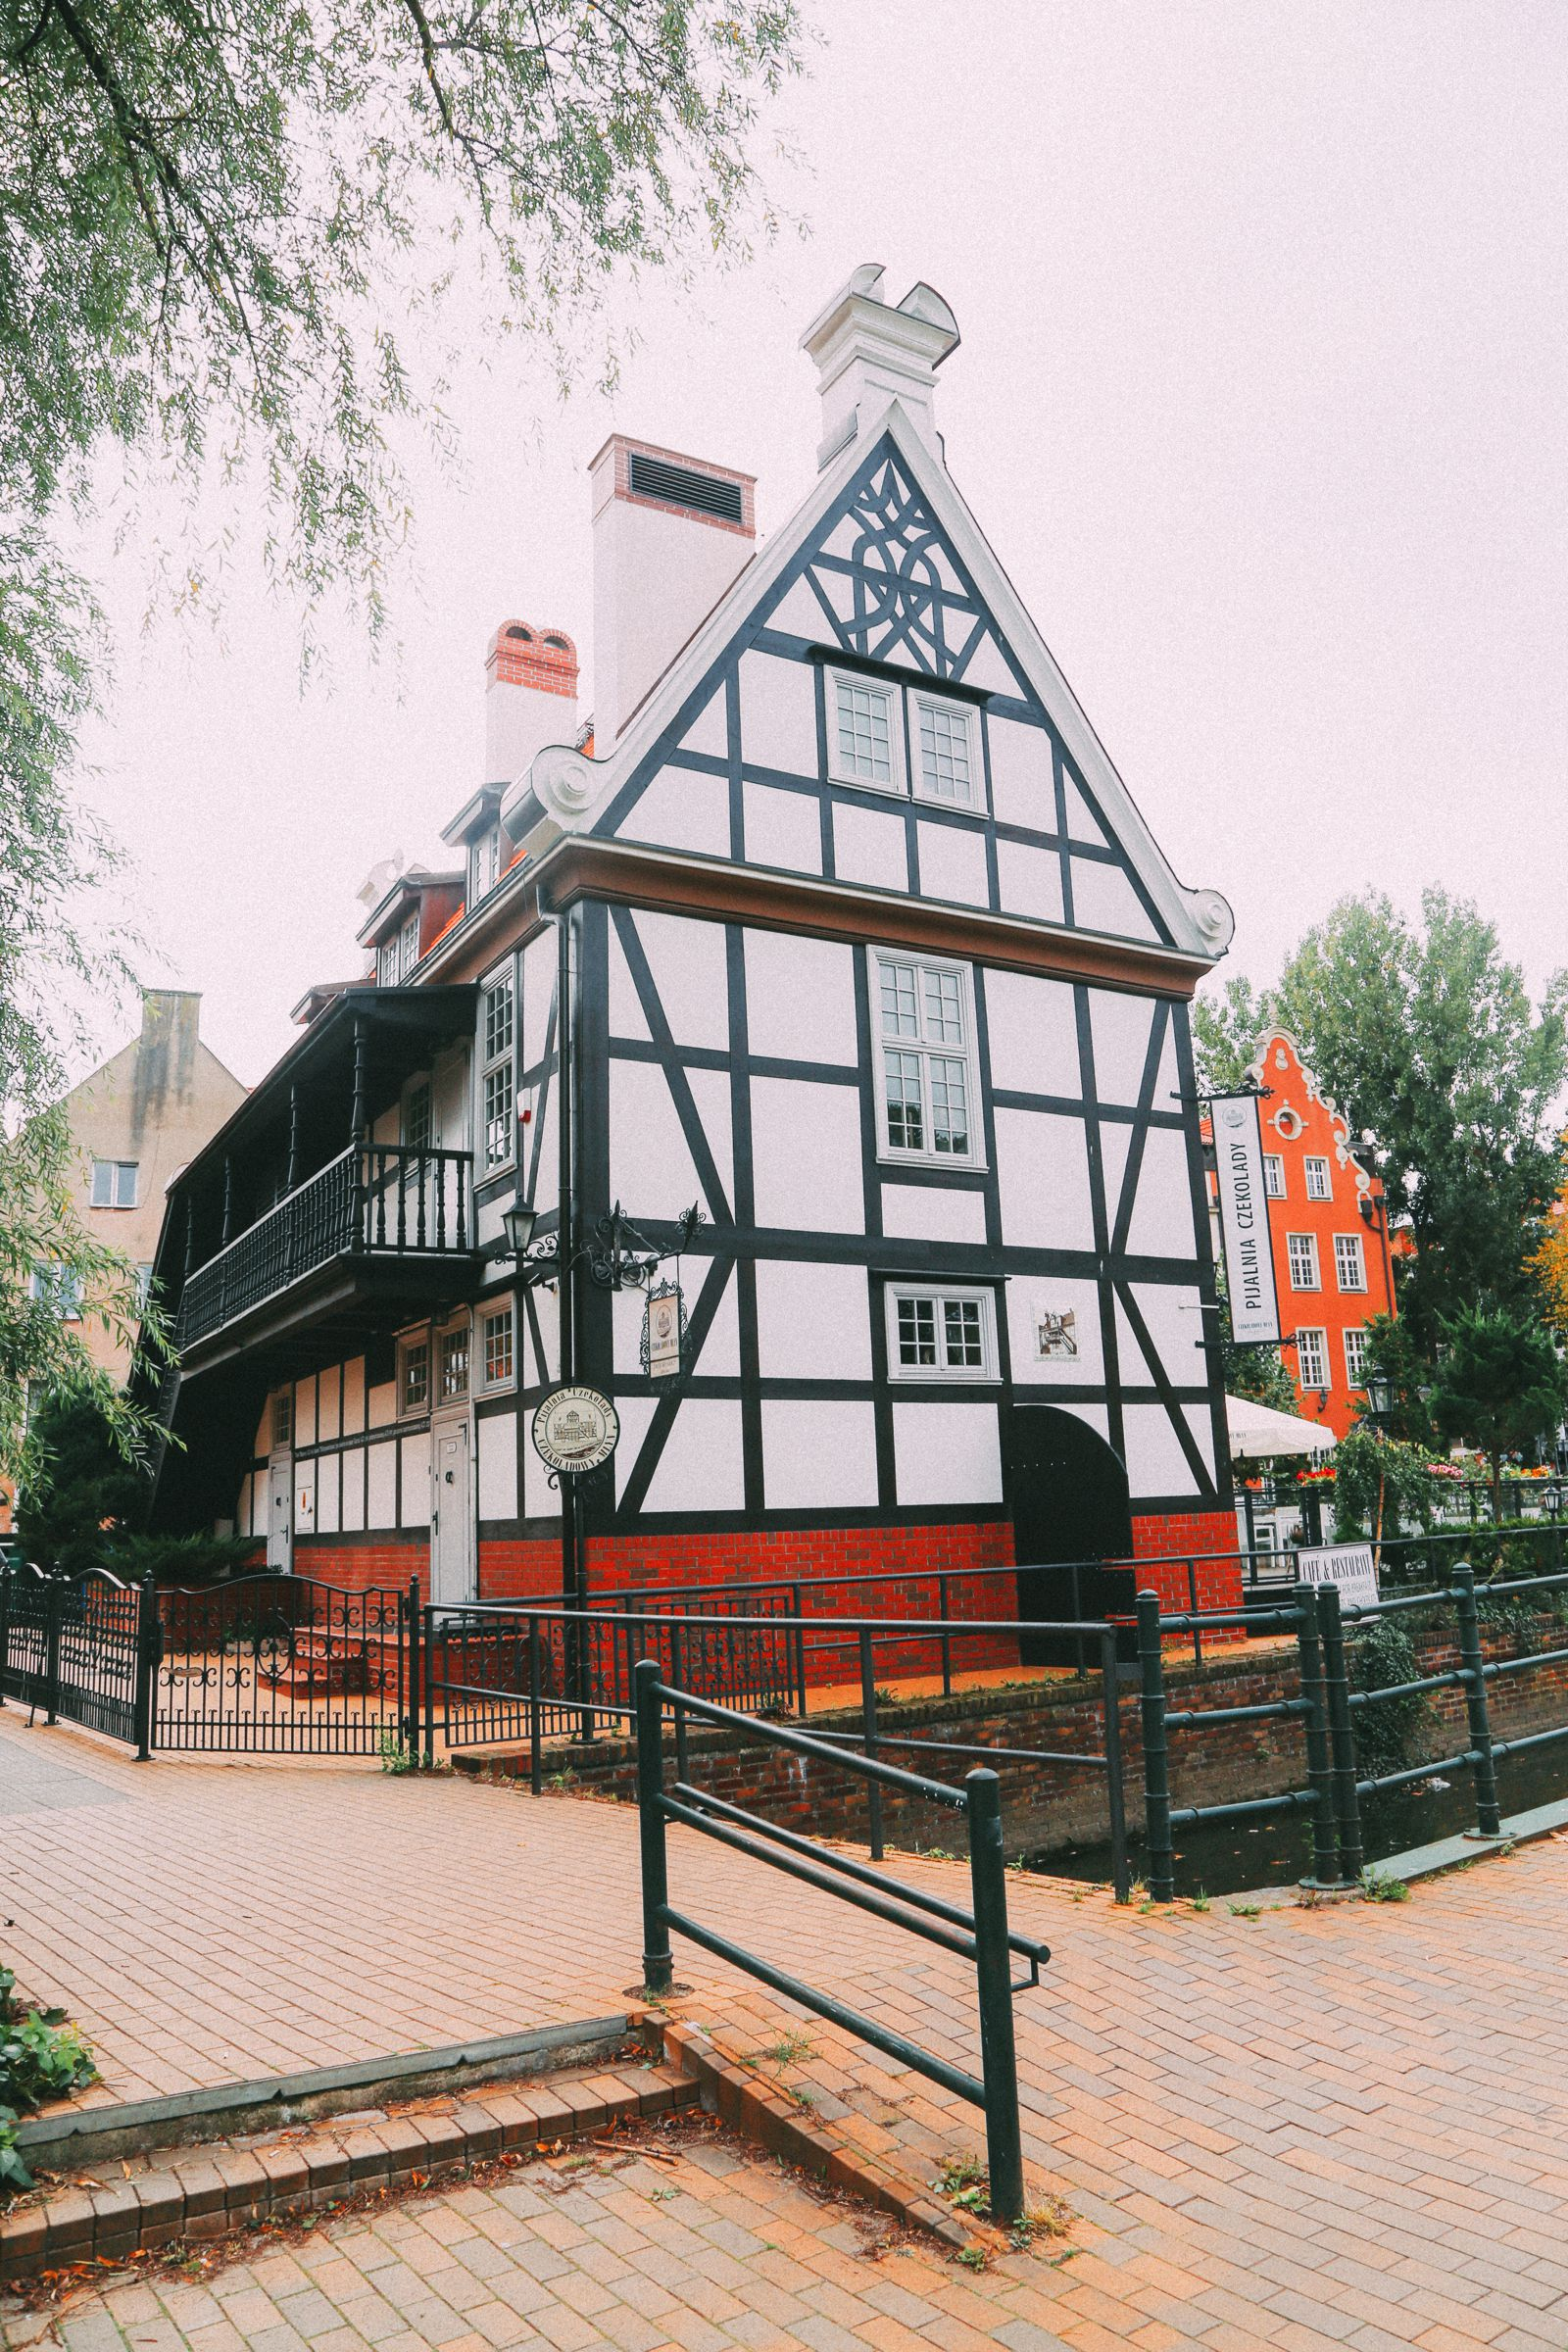 The Beautiful Old Town Of Gdansk In Poland   PART 1 (8)